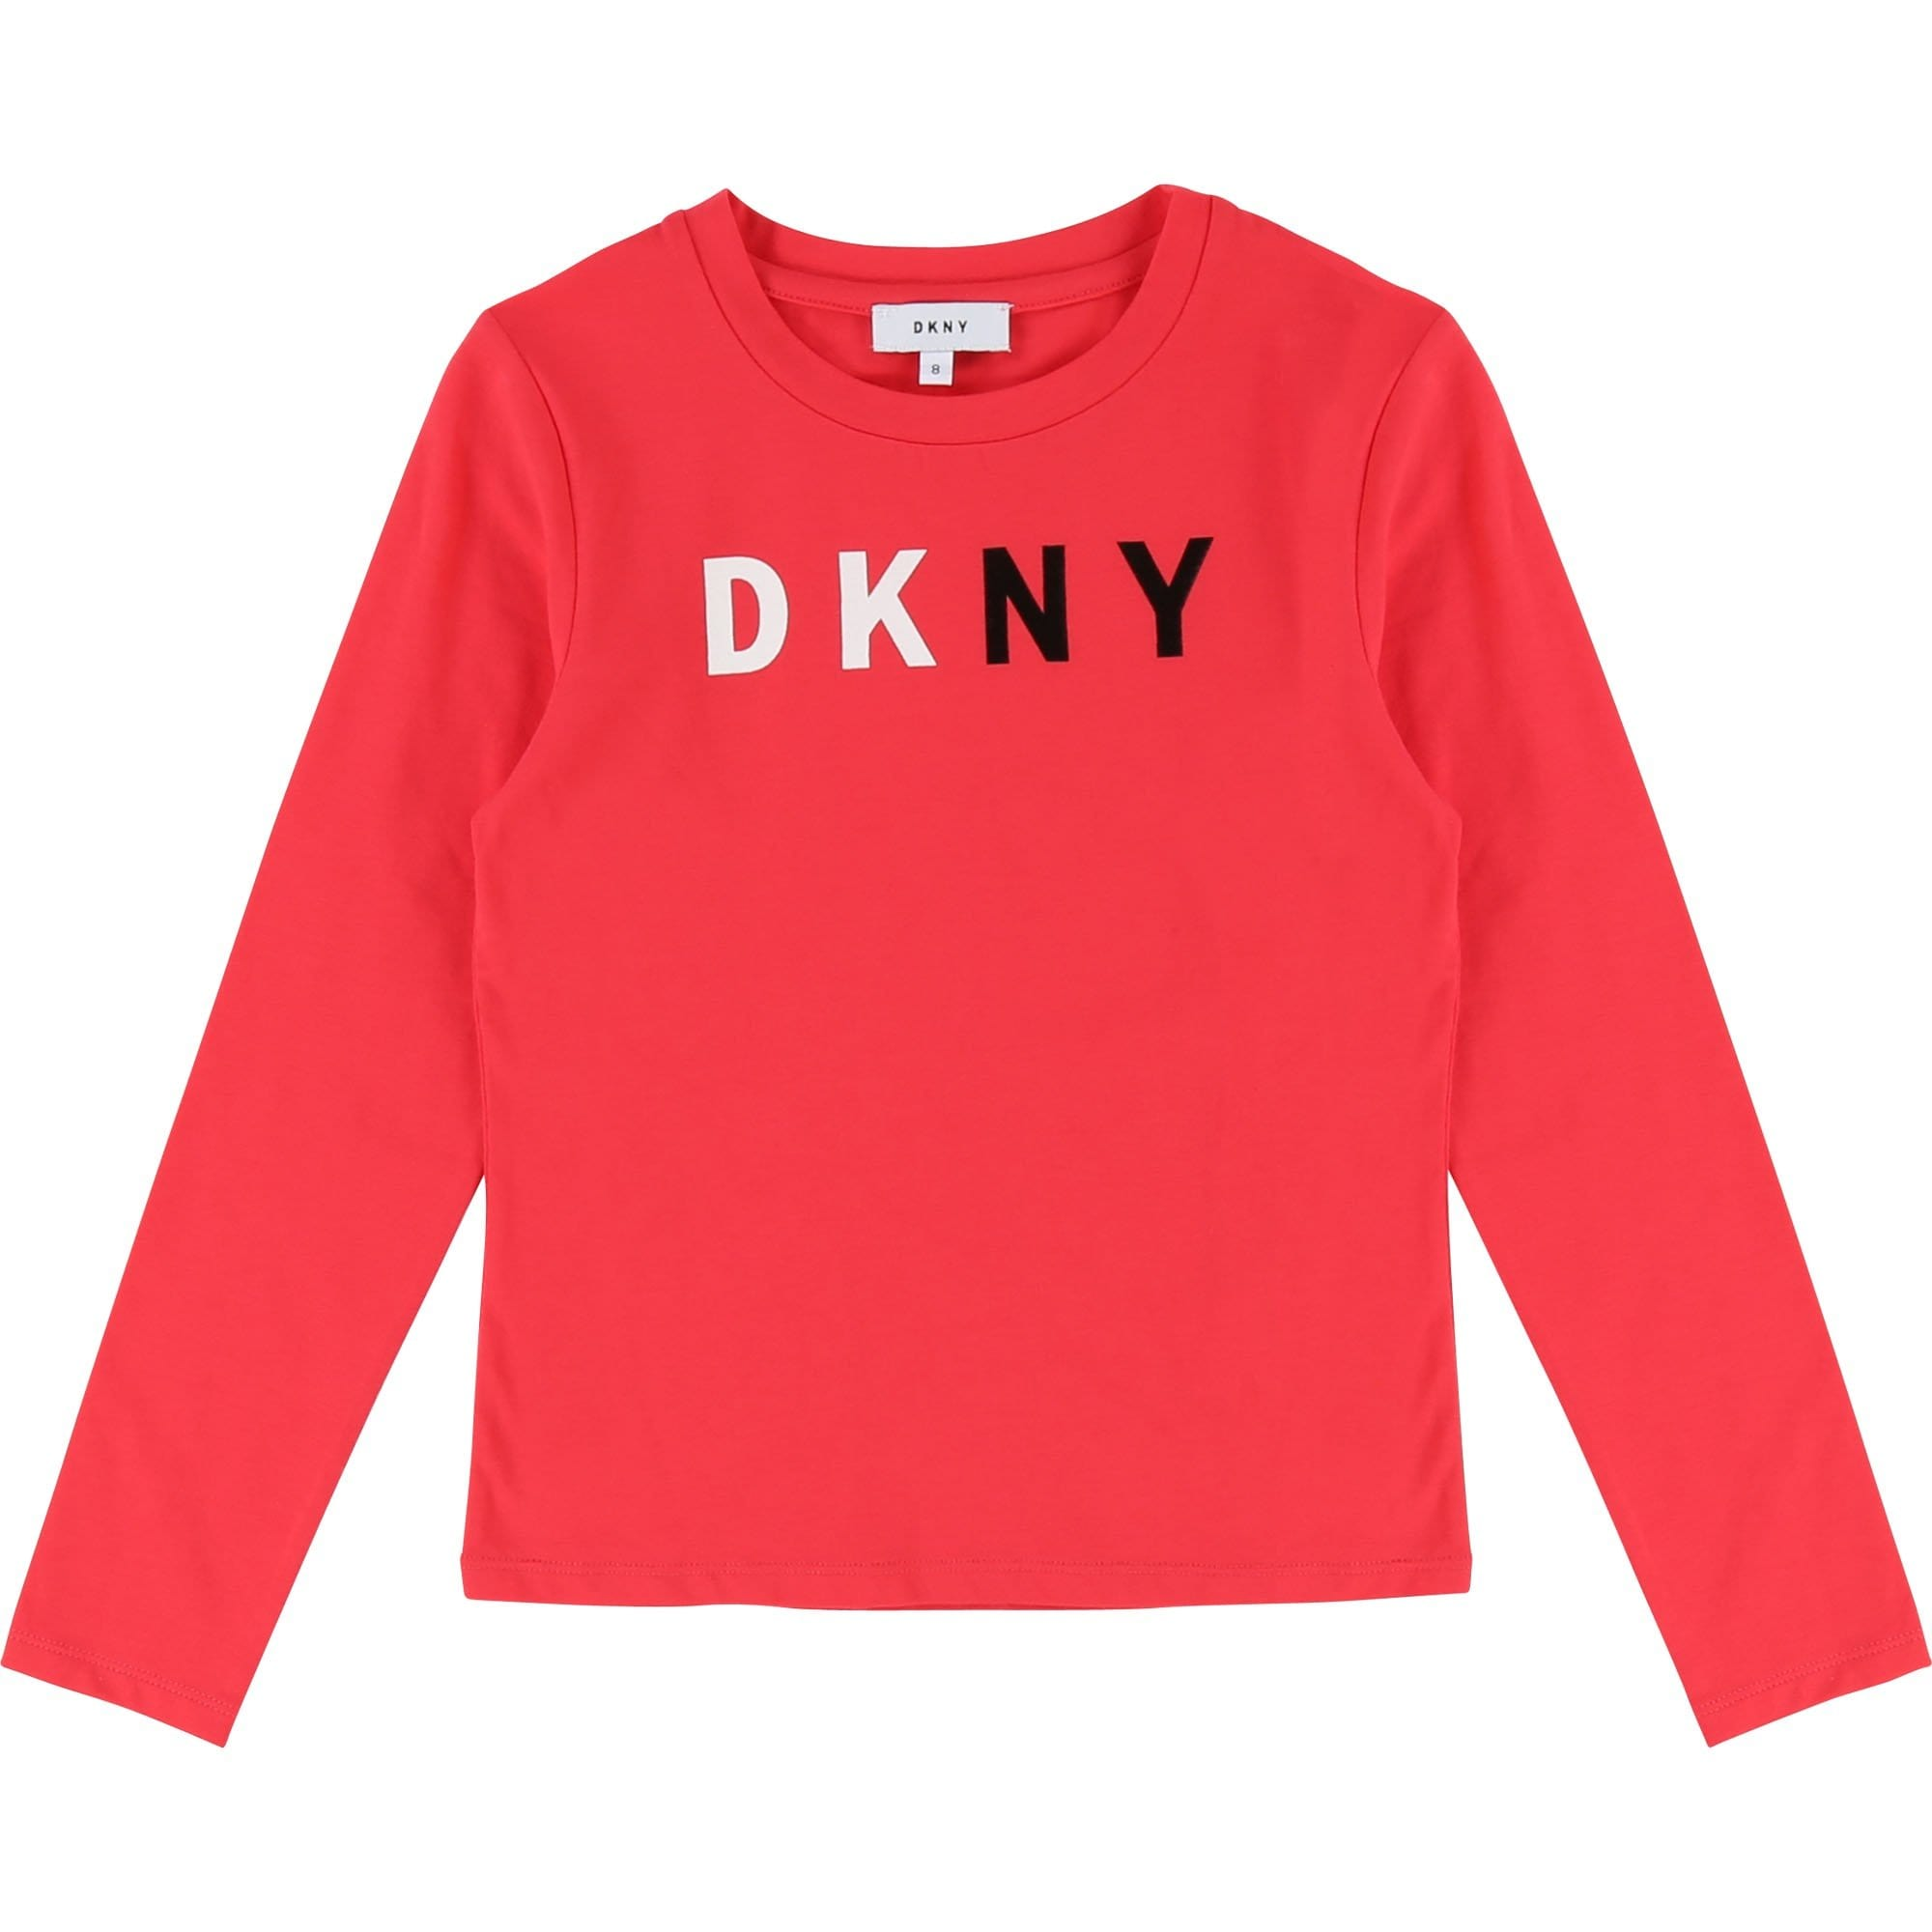 DKNY Long Sleeve T-Shirt (4716492095619)